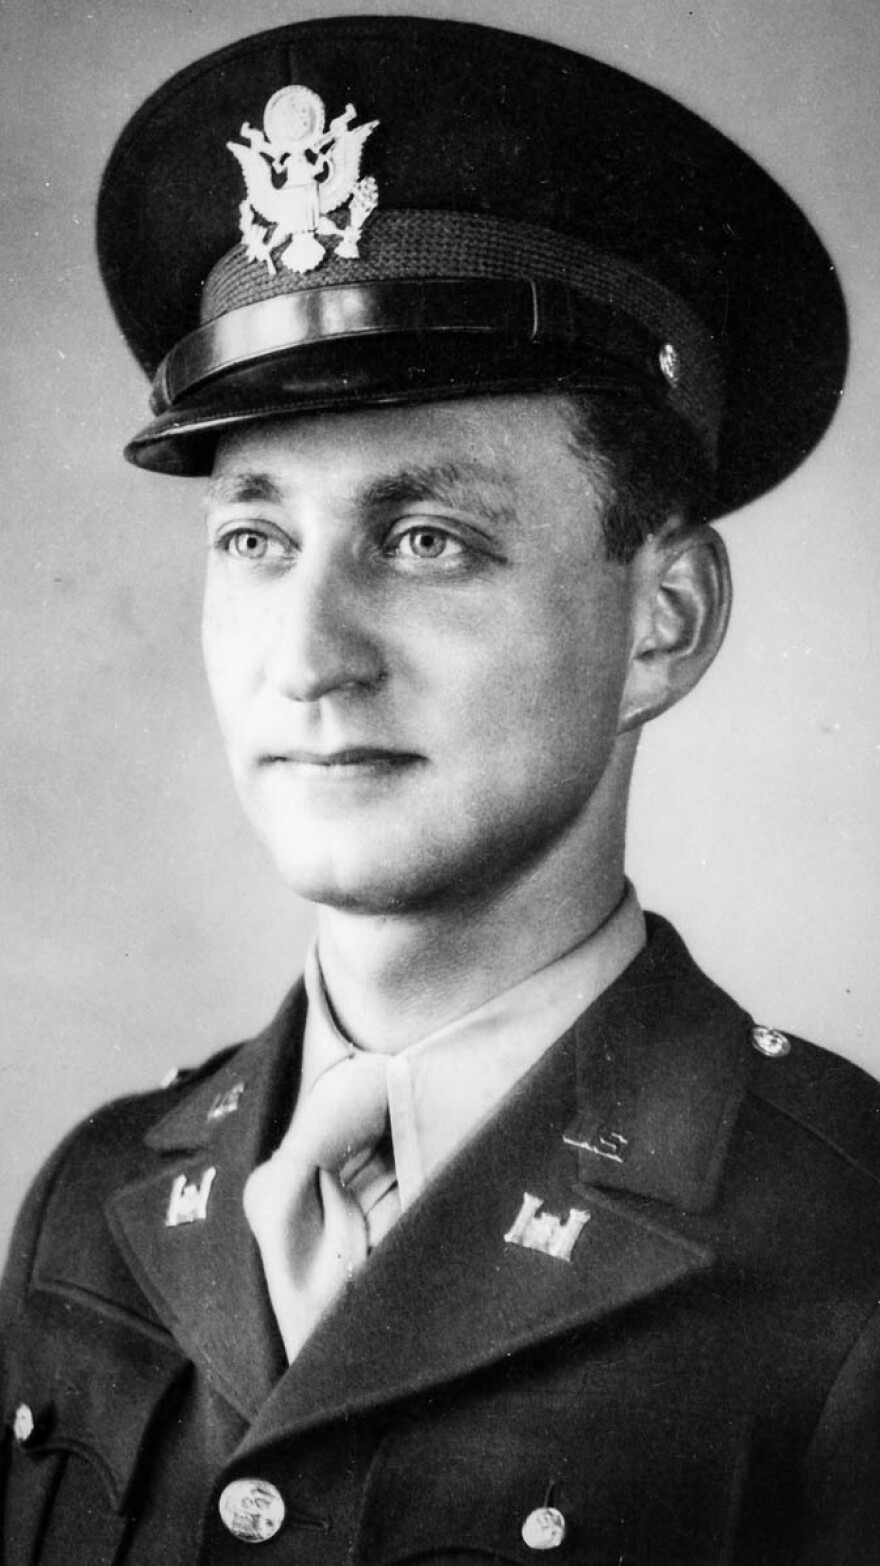 A young Gilbert Seltzer in uniform in October, 1942, after graduating from Officer Candidate School in Fort Belvoir, Va.